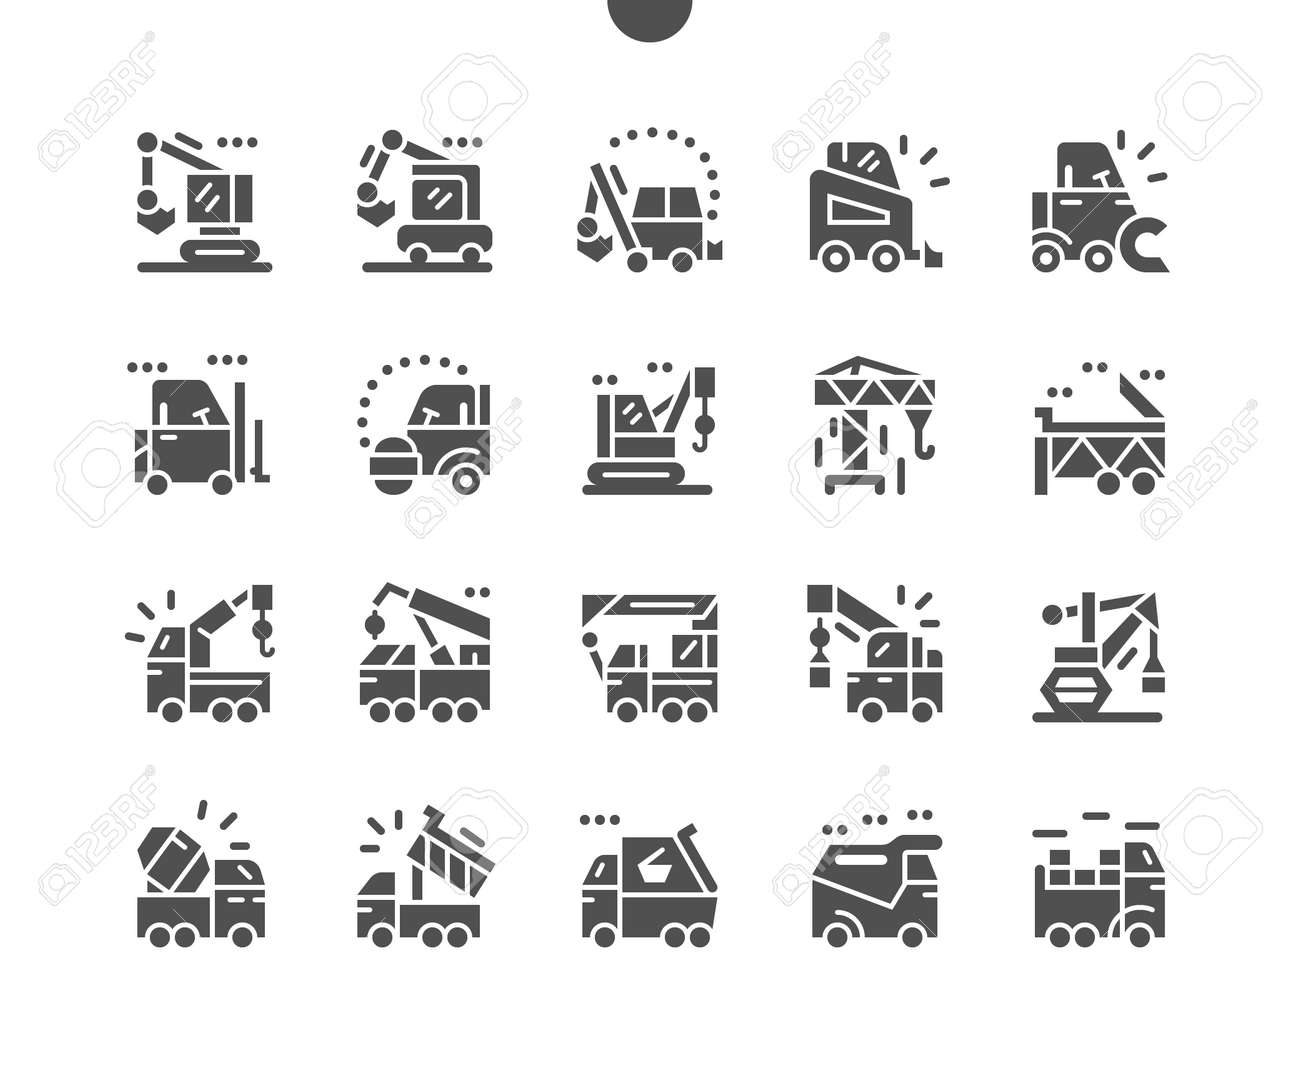 Special machinery. Manipulator, road roller, dump truck, excavator, and crane. Special equipment for cargo transportation. Construction and vehicle. Vector Solid Icons. Simple Pictogram - 168492877